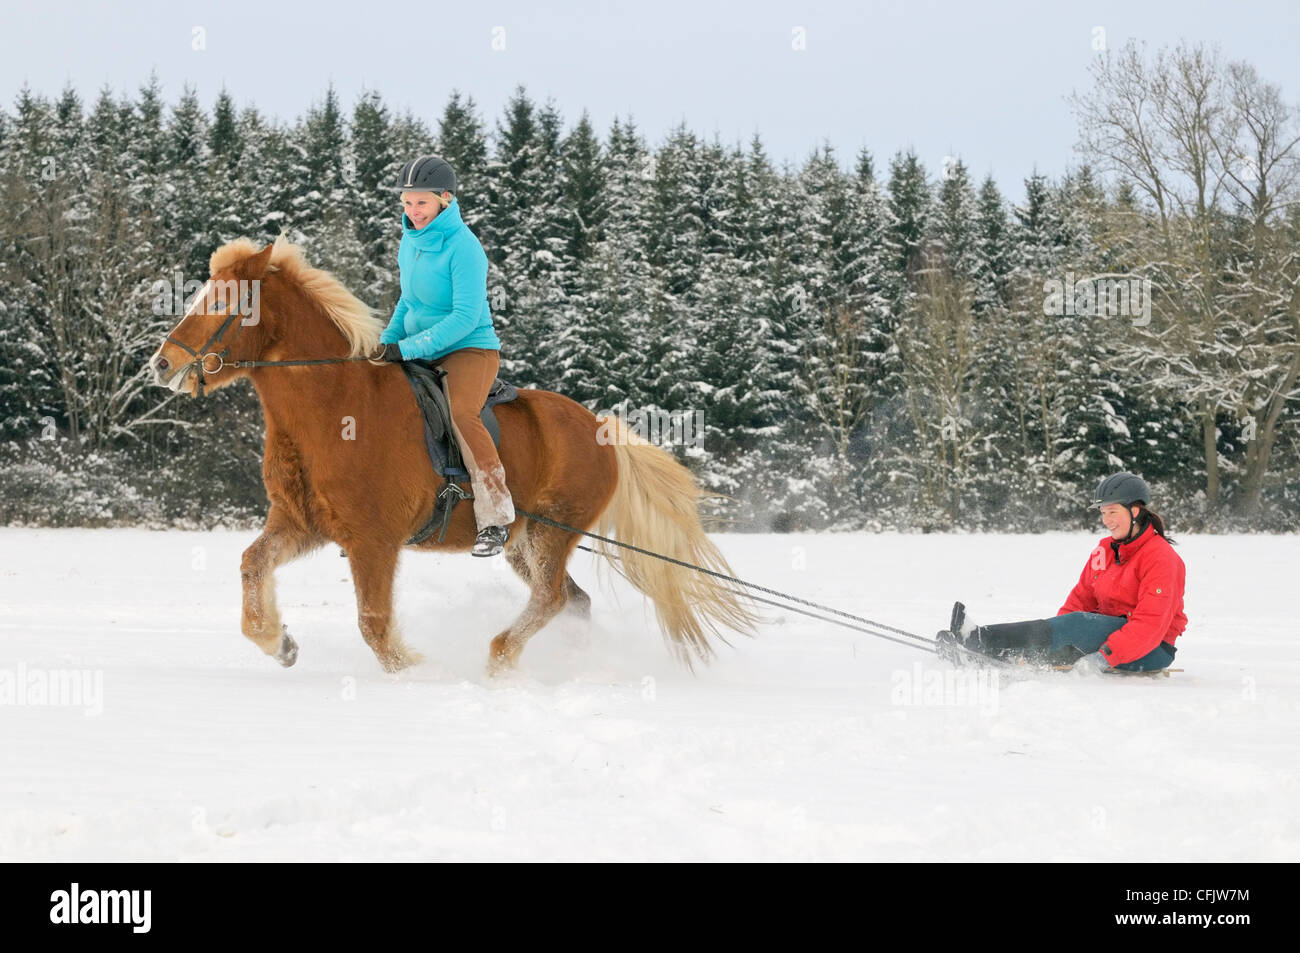 Having fun with pony in winter: Icelandic horse drawing a sleigh - Stock Image